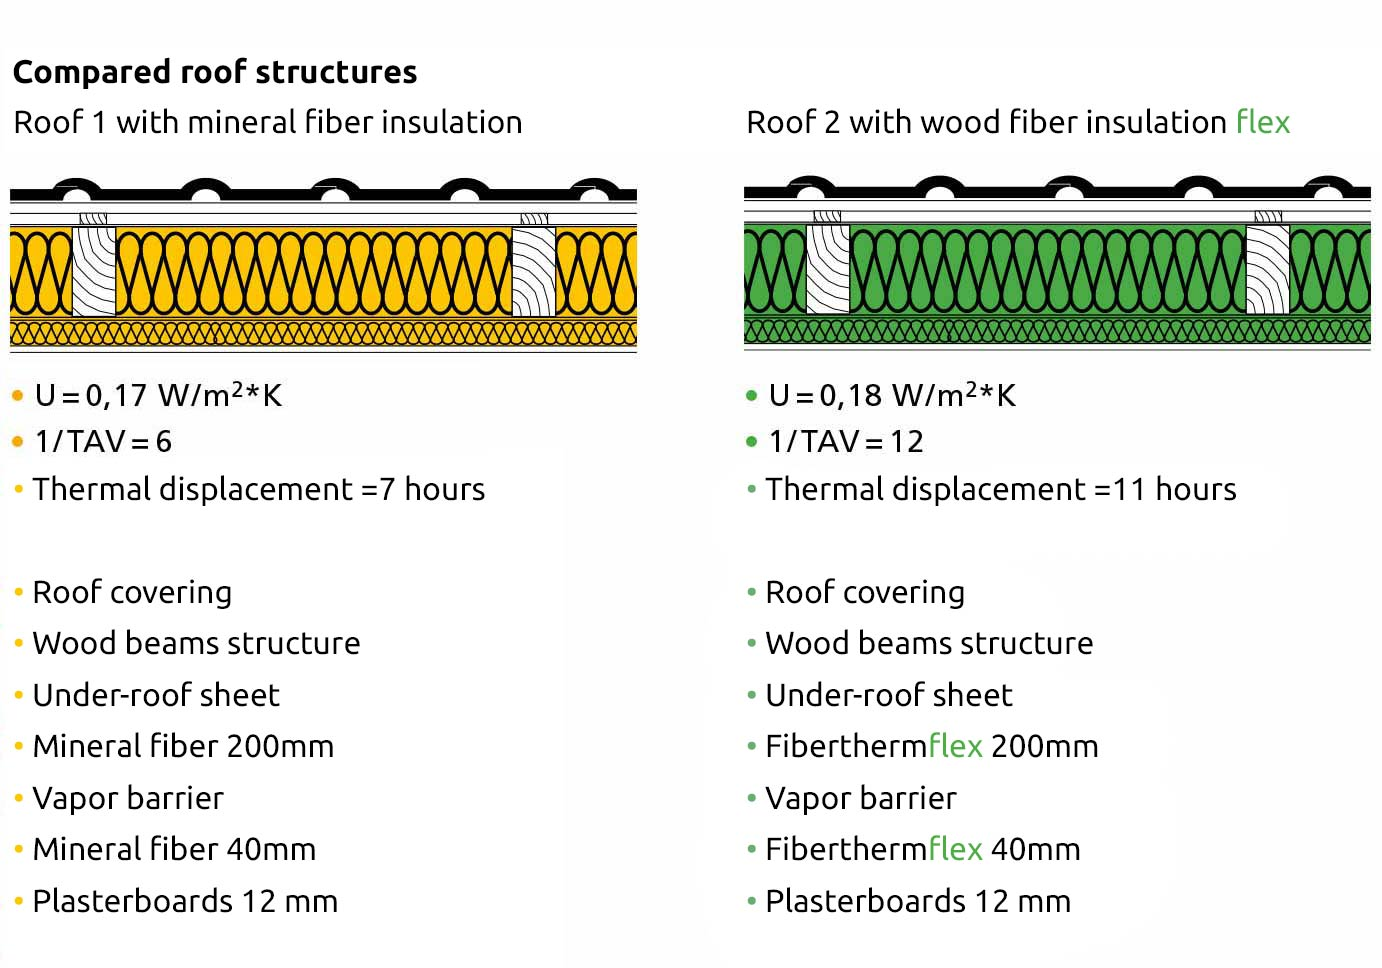 Thermal displacement Roof structures compared